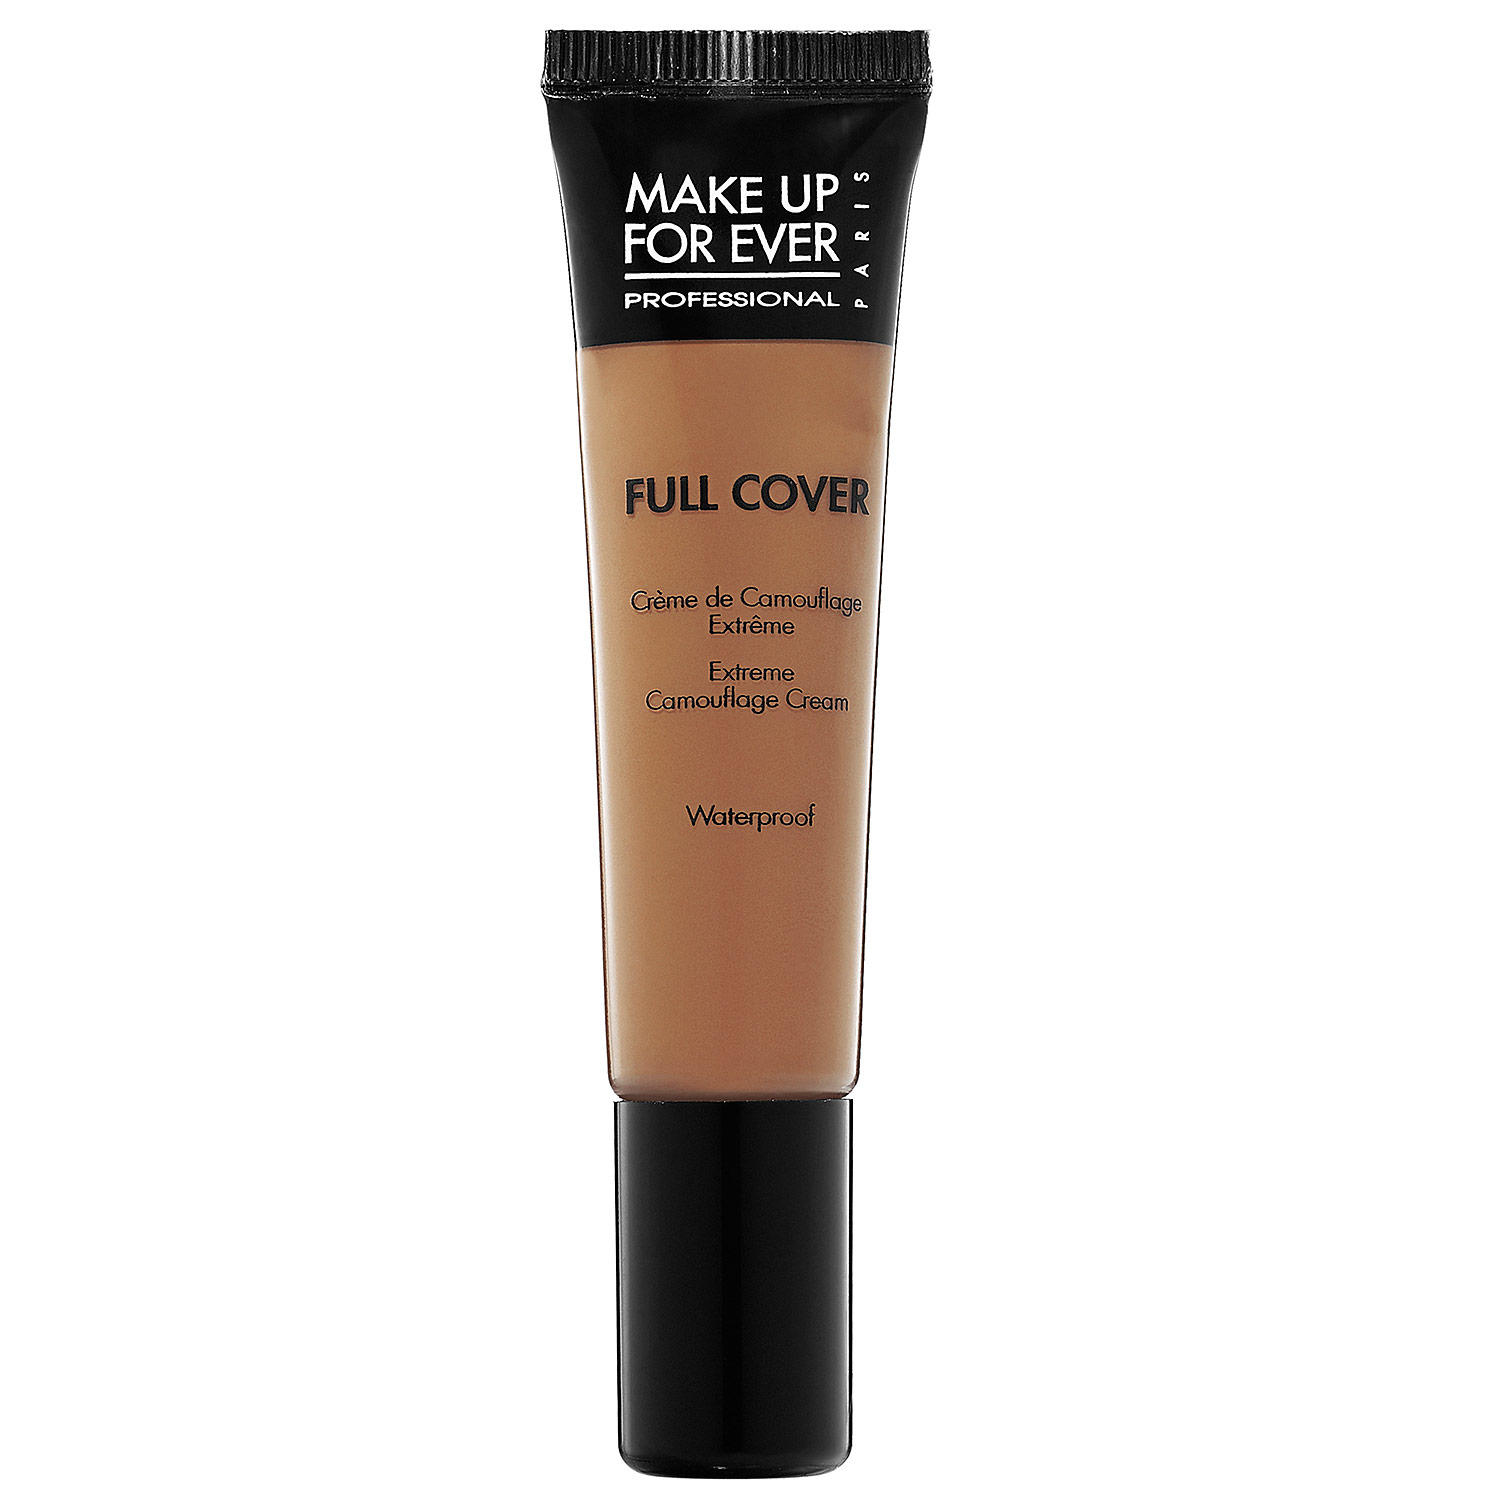 Makeup Forever Full Cover Extreme Camouflage Cream Fawn 8